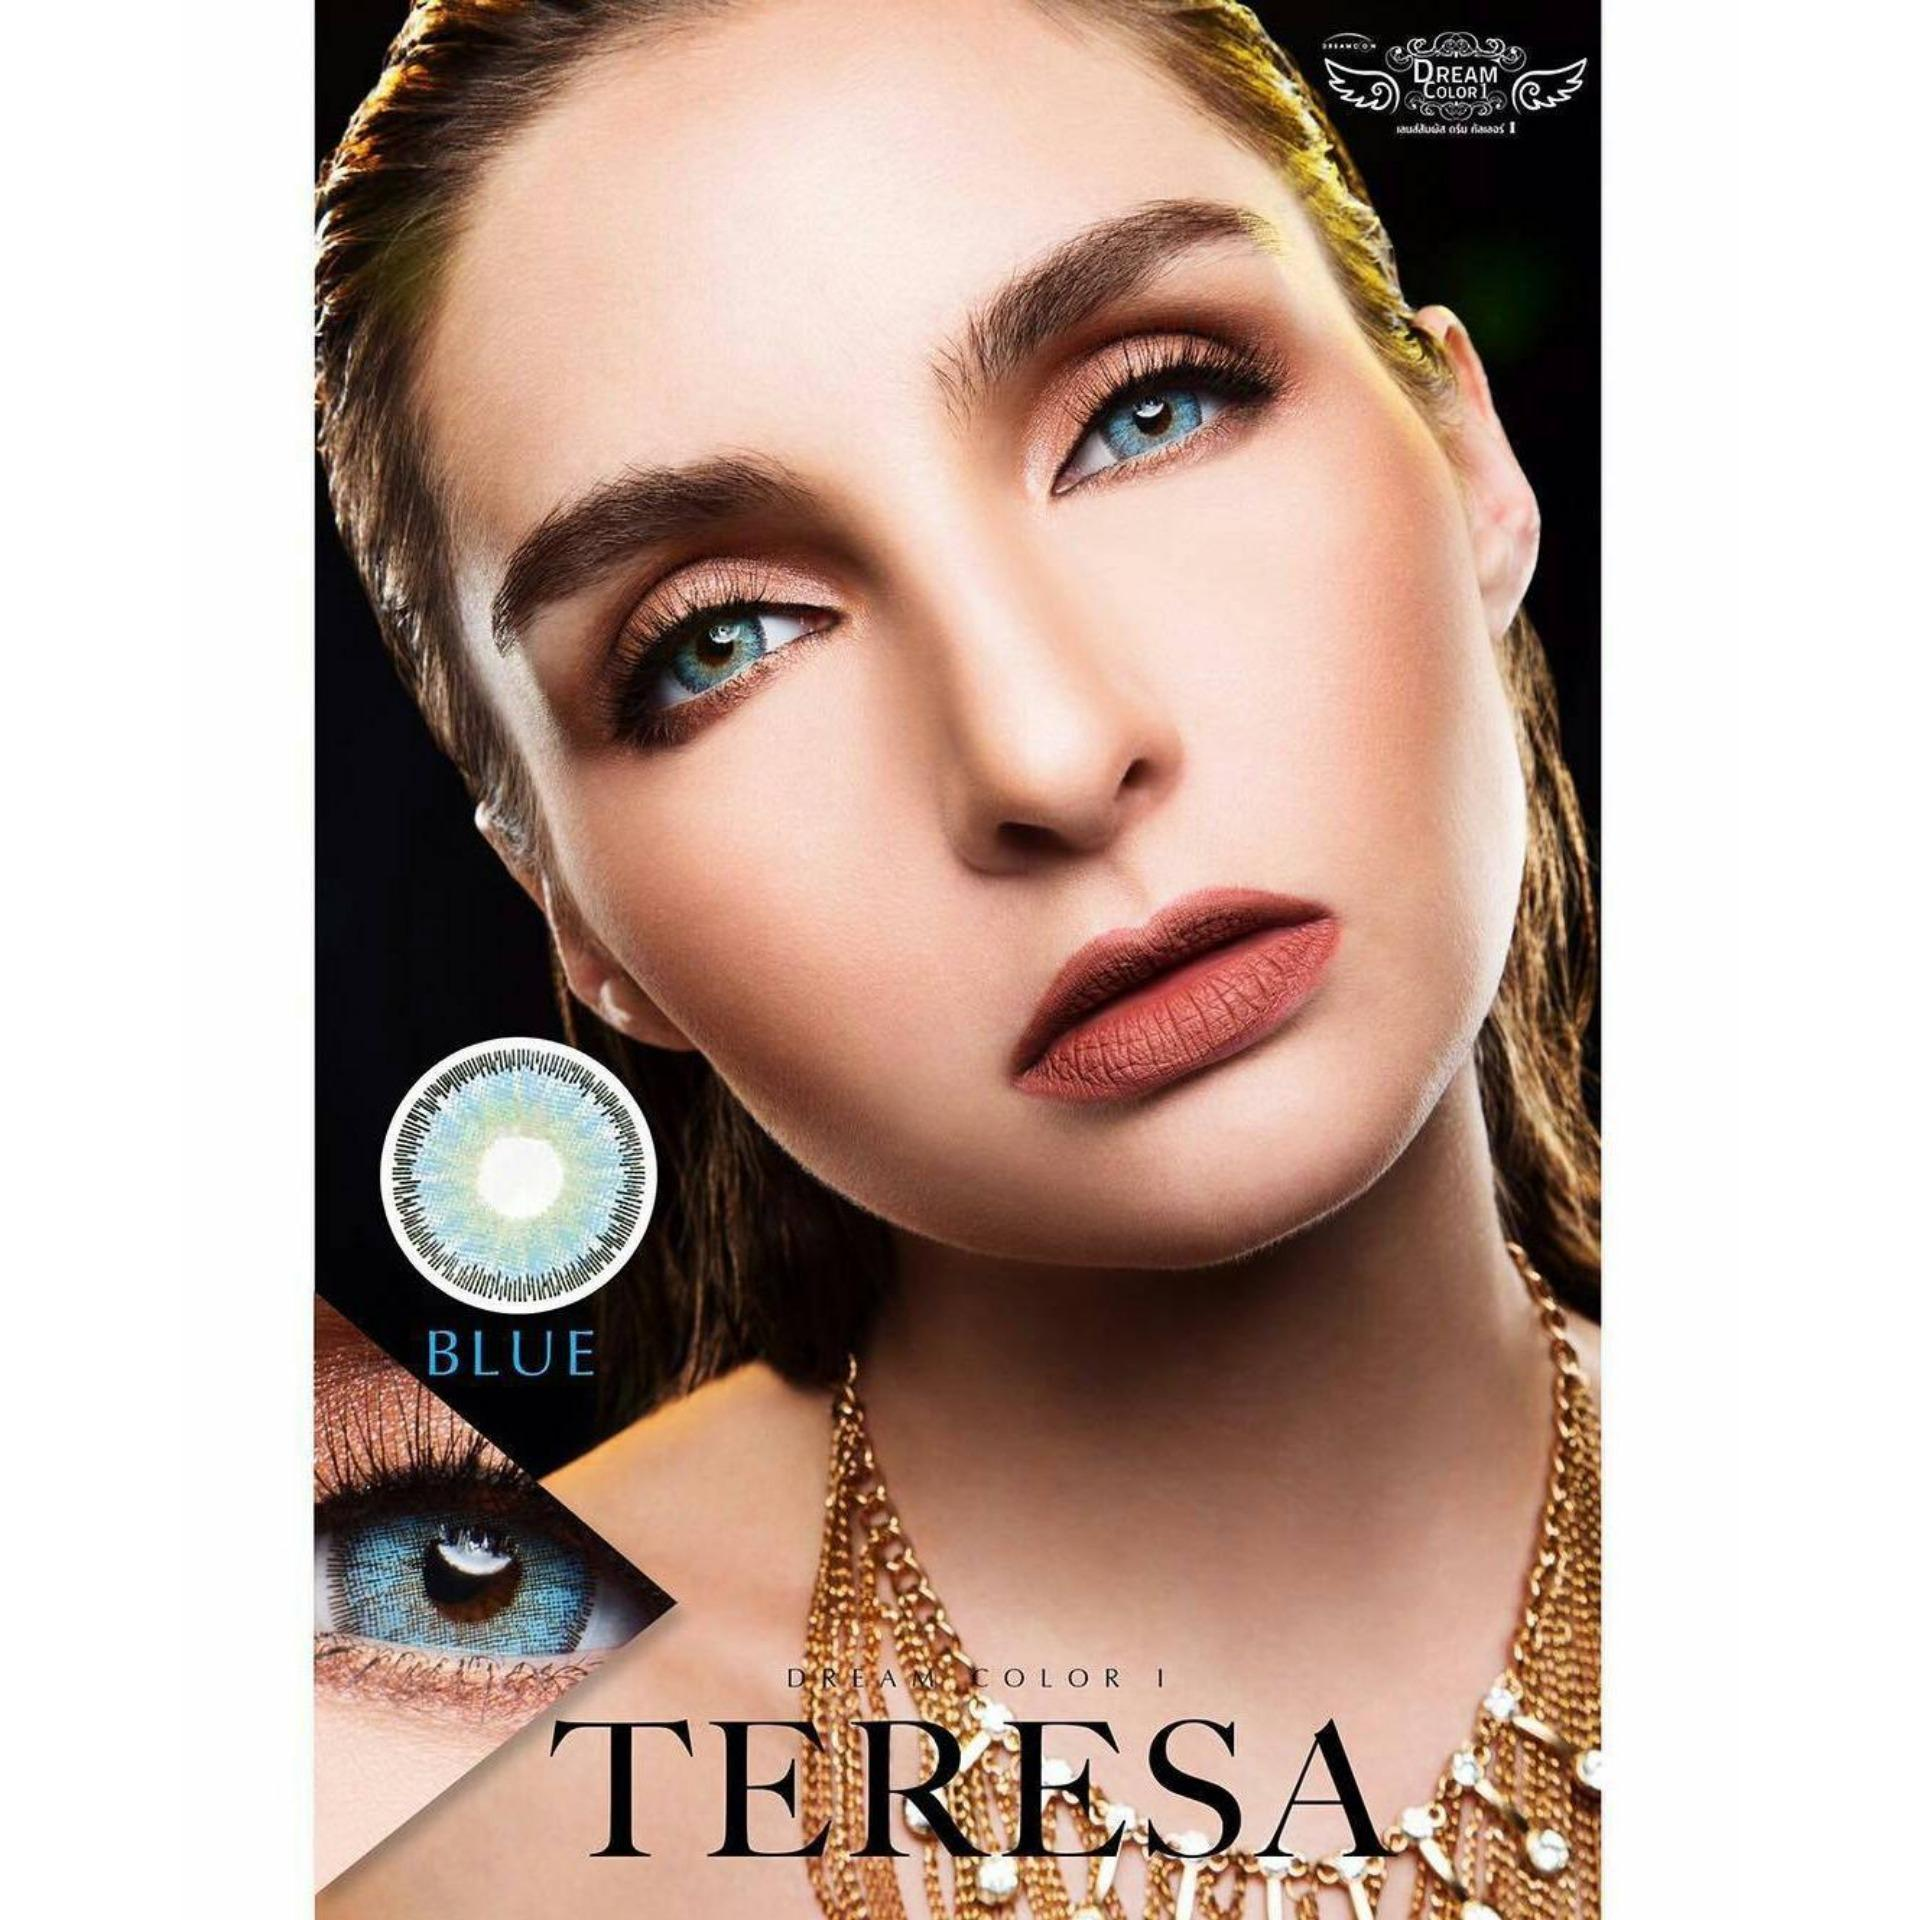 Teresa Softlens Dream Color + Free Lenscase - Blue